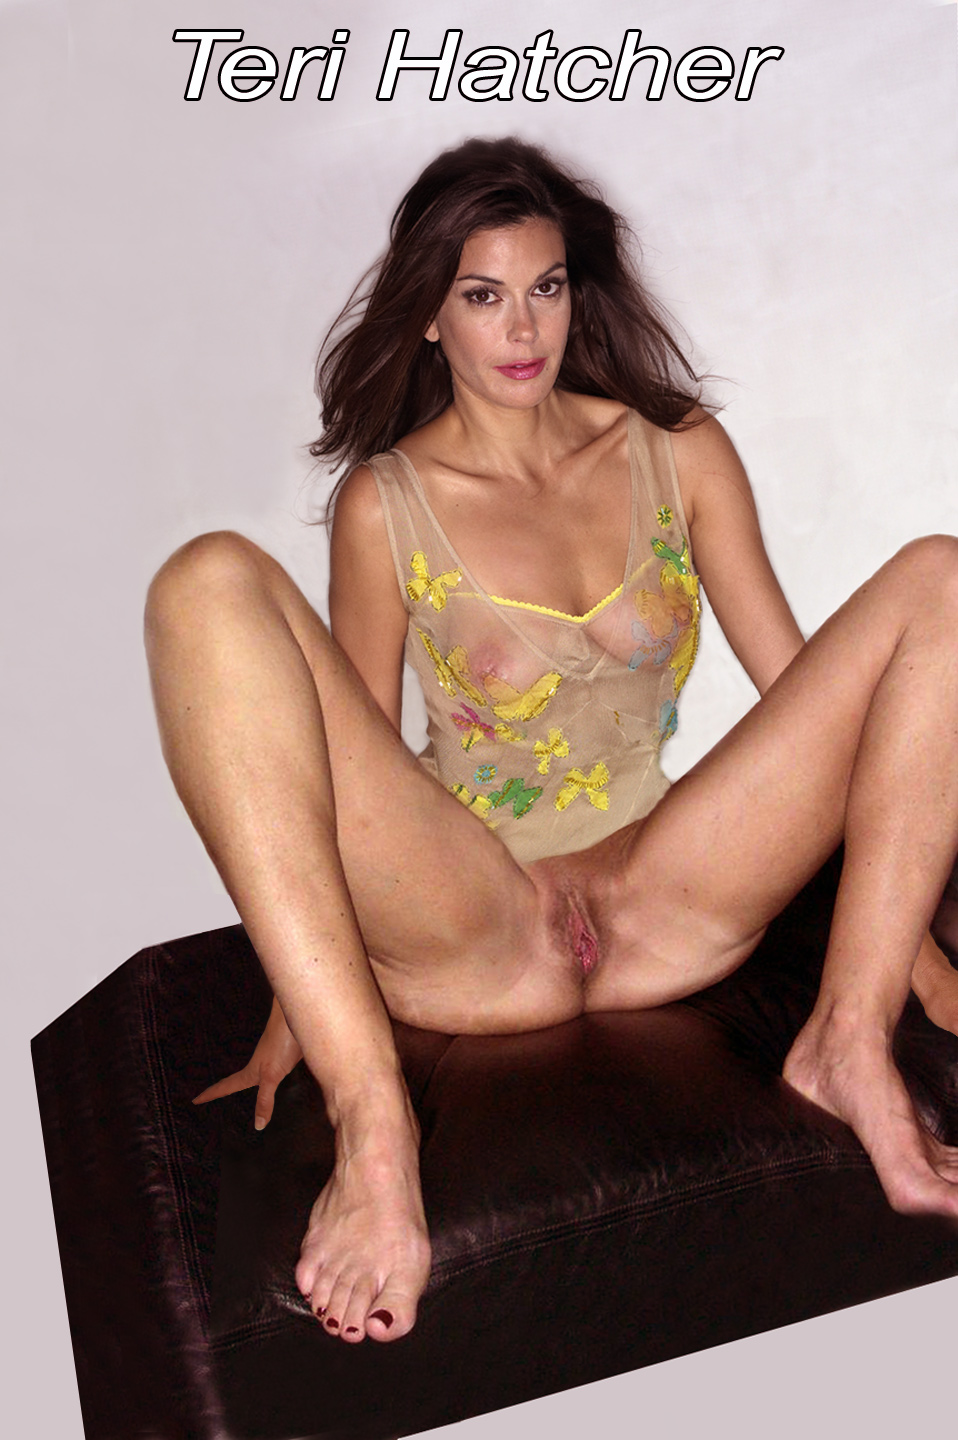 Teri hatcher in nude pantyhose — photo 8